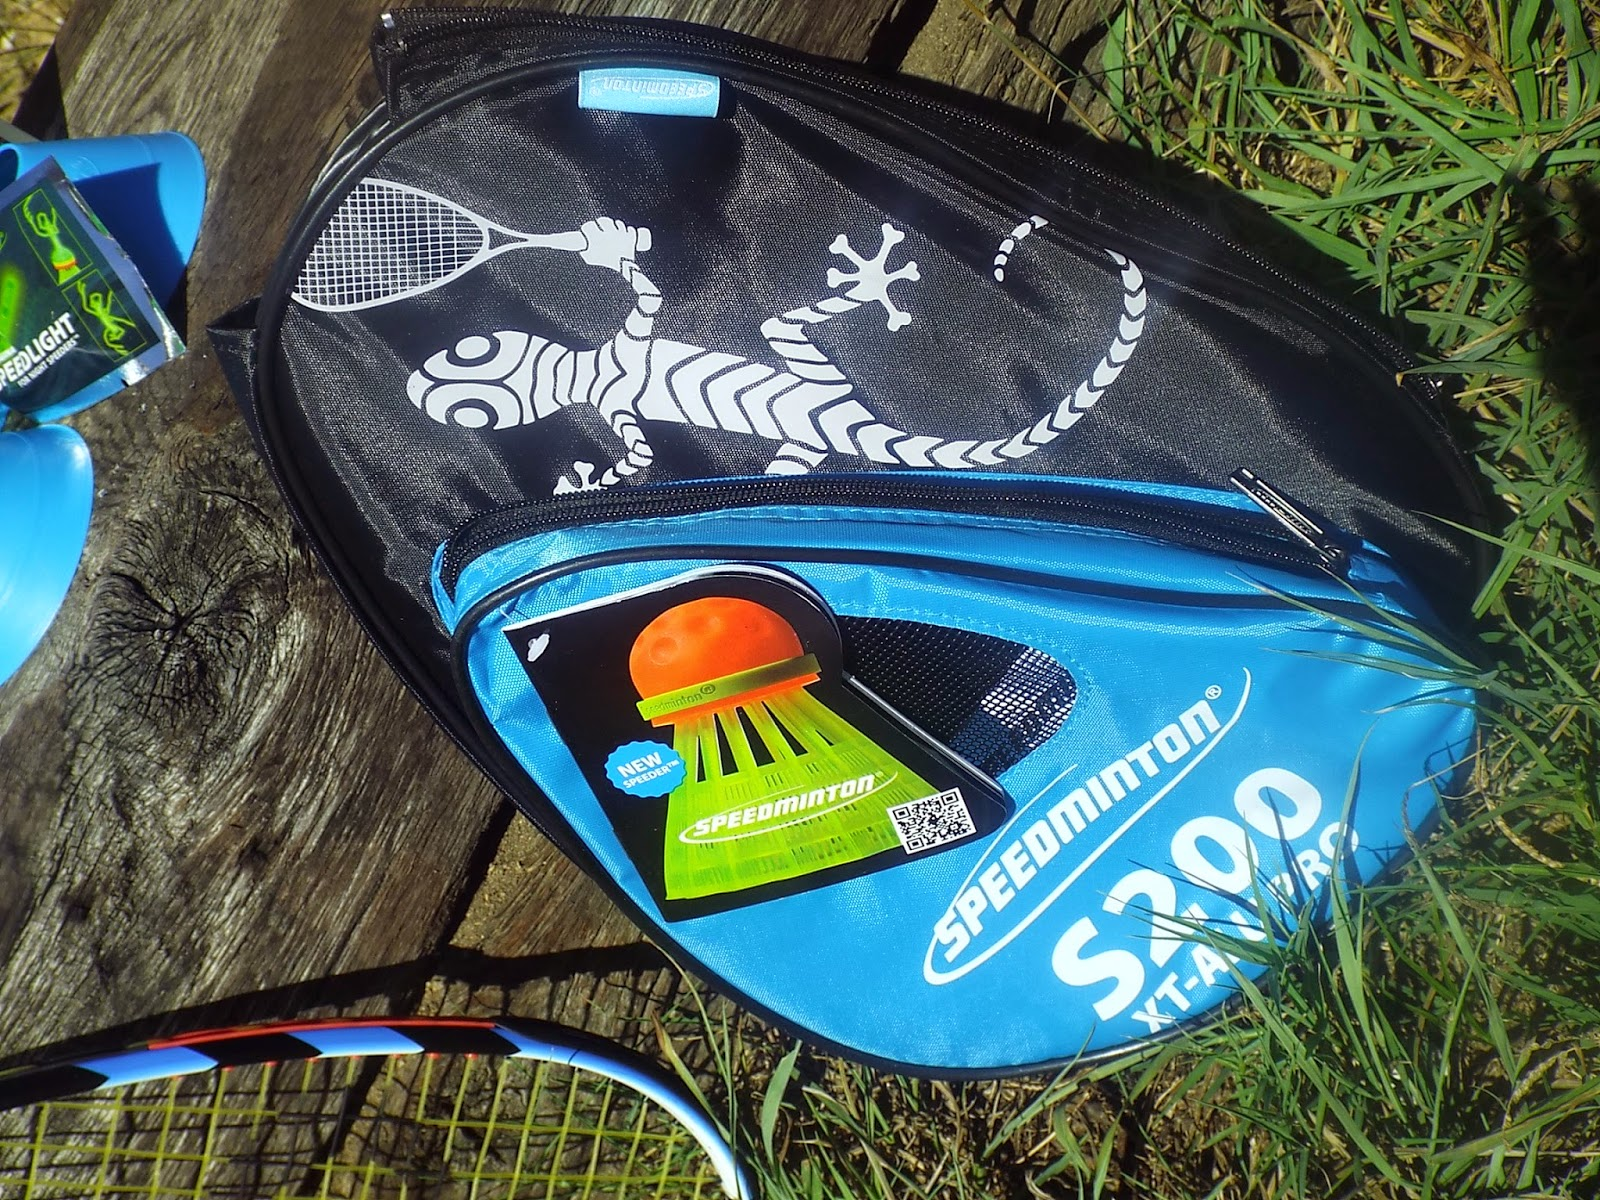 Speedminton S200 Carrying Case